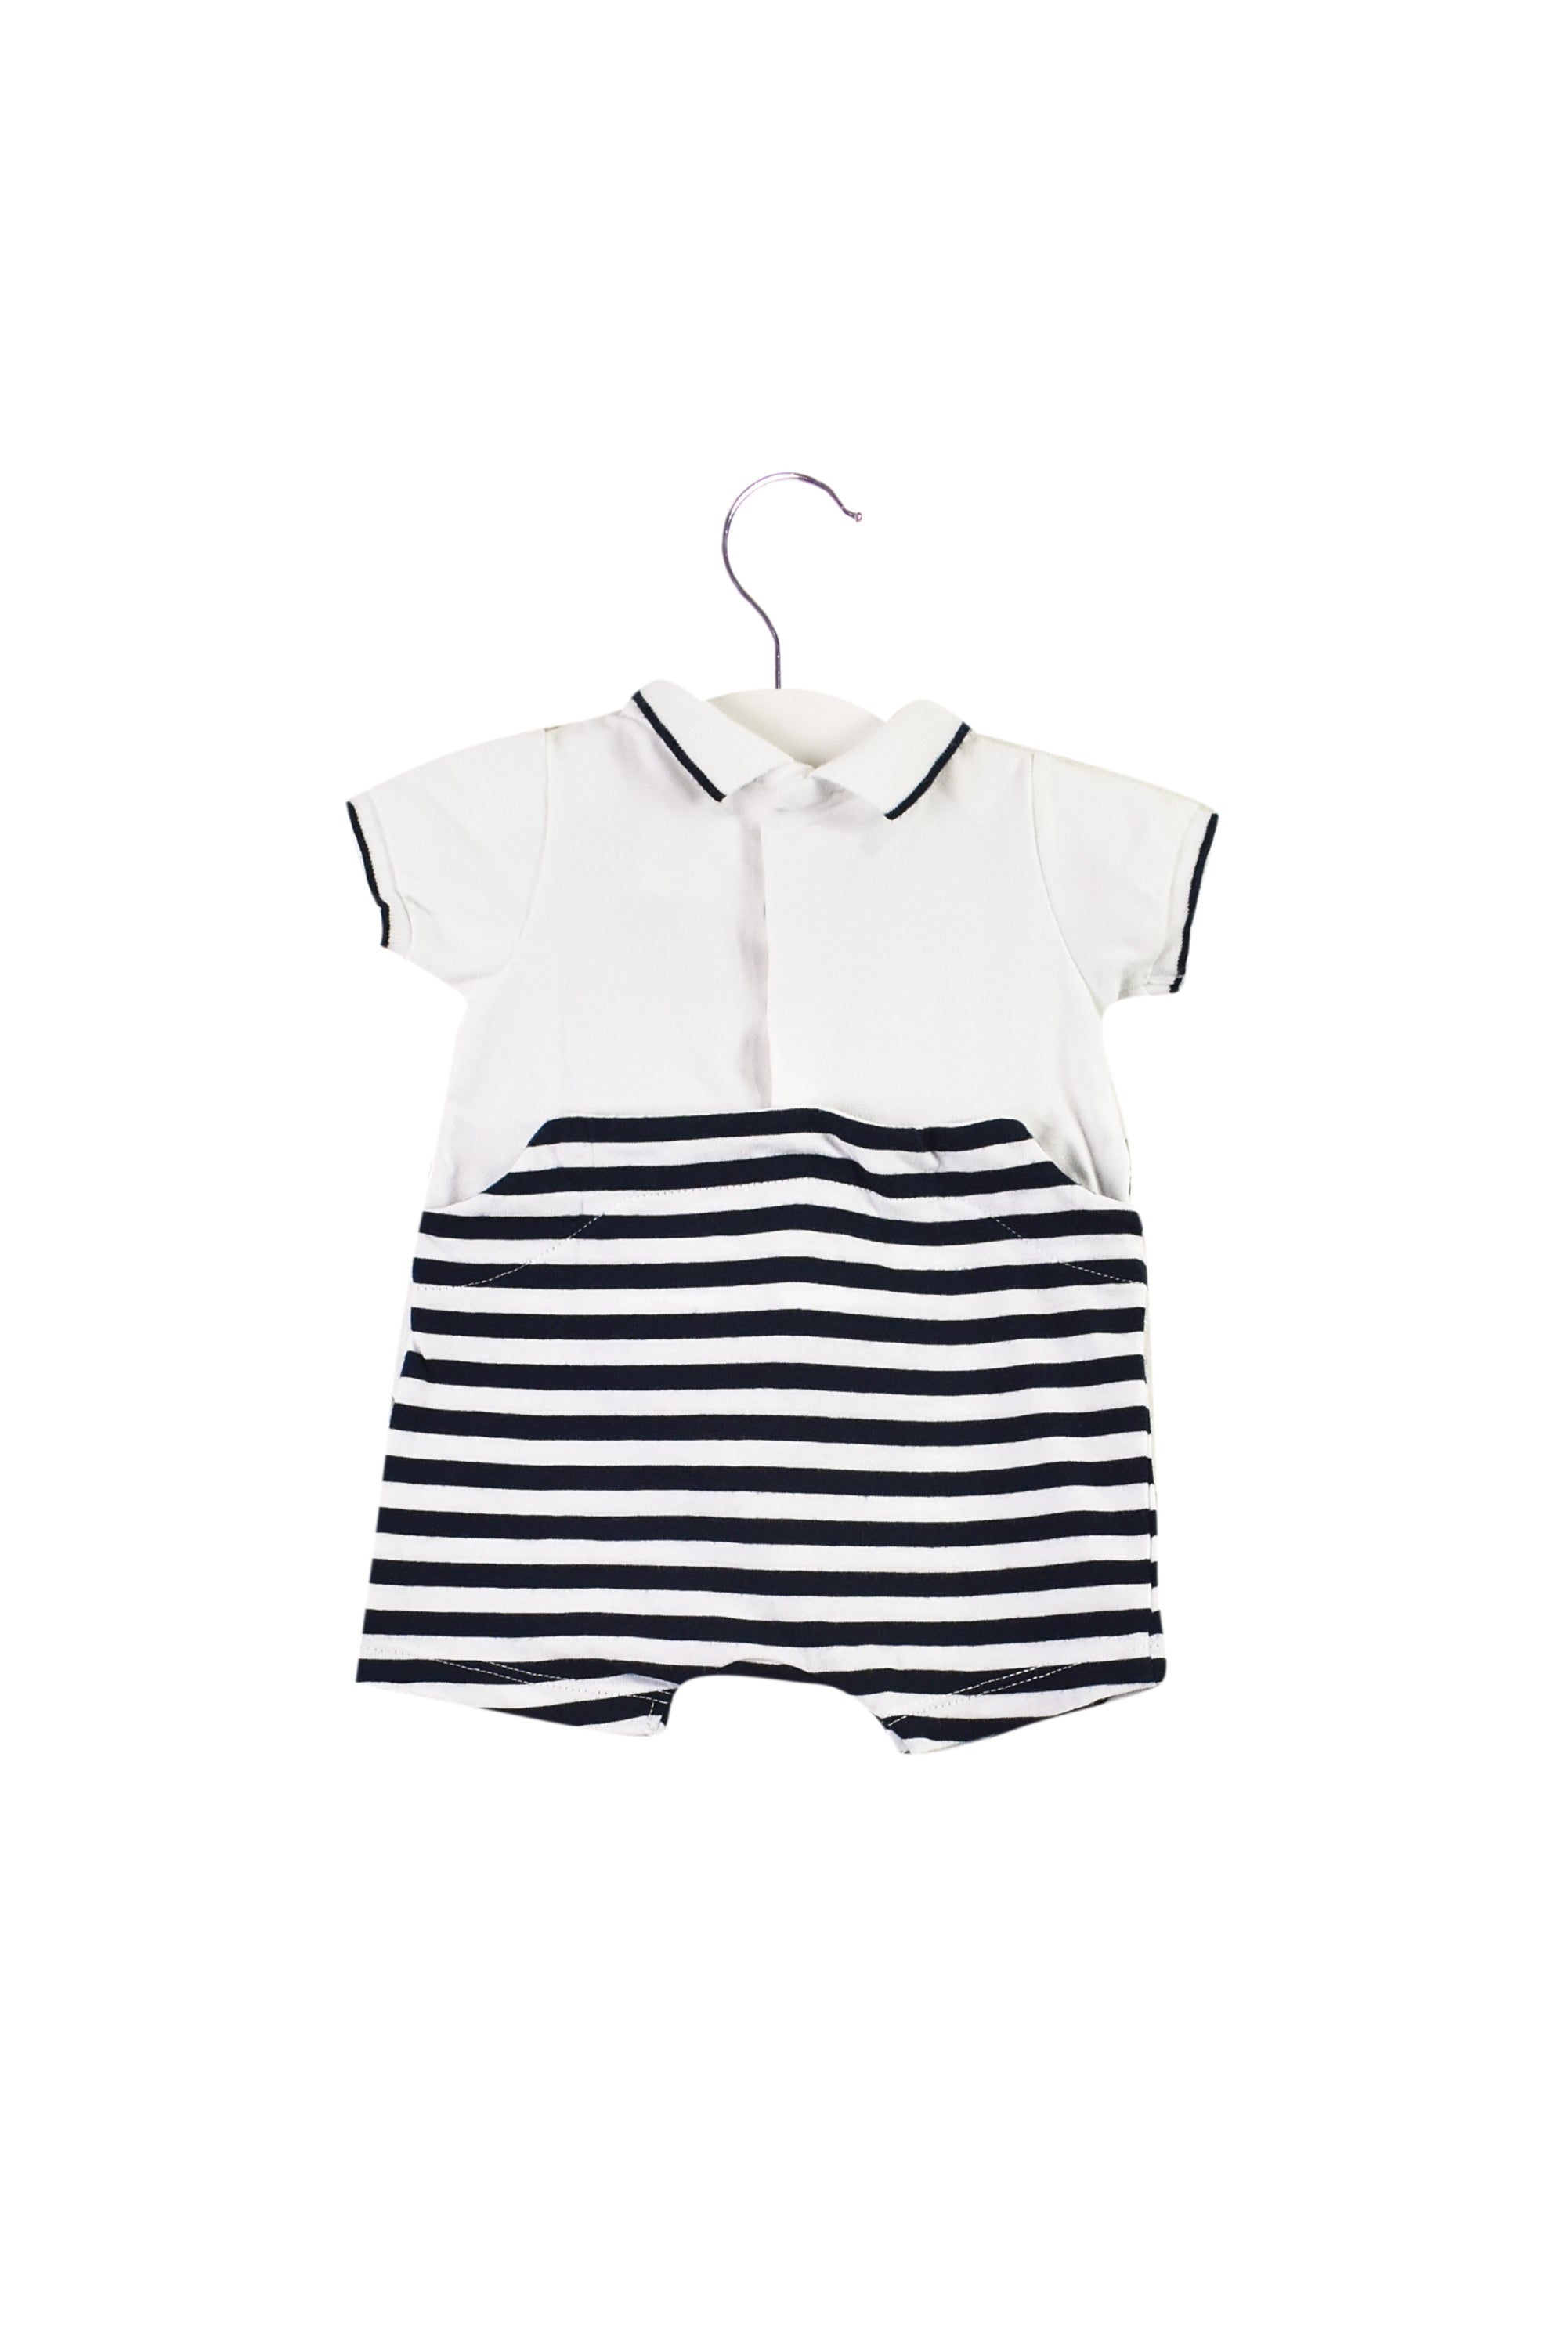 10031621 Jacadi Baby~Romper 3M at Retykle